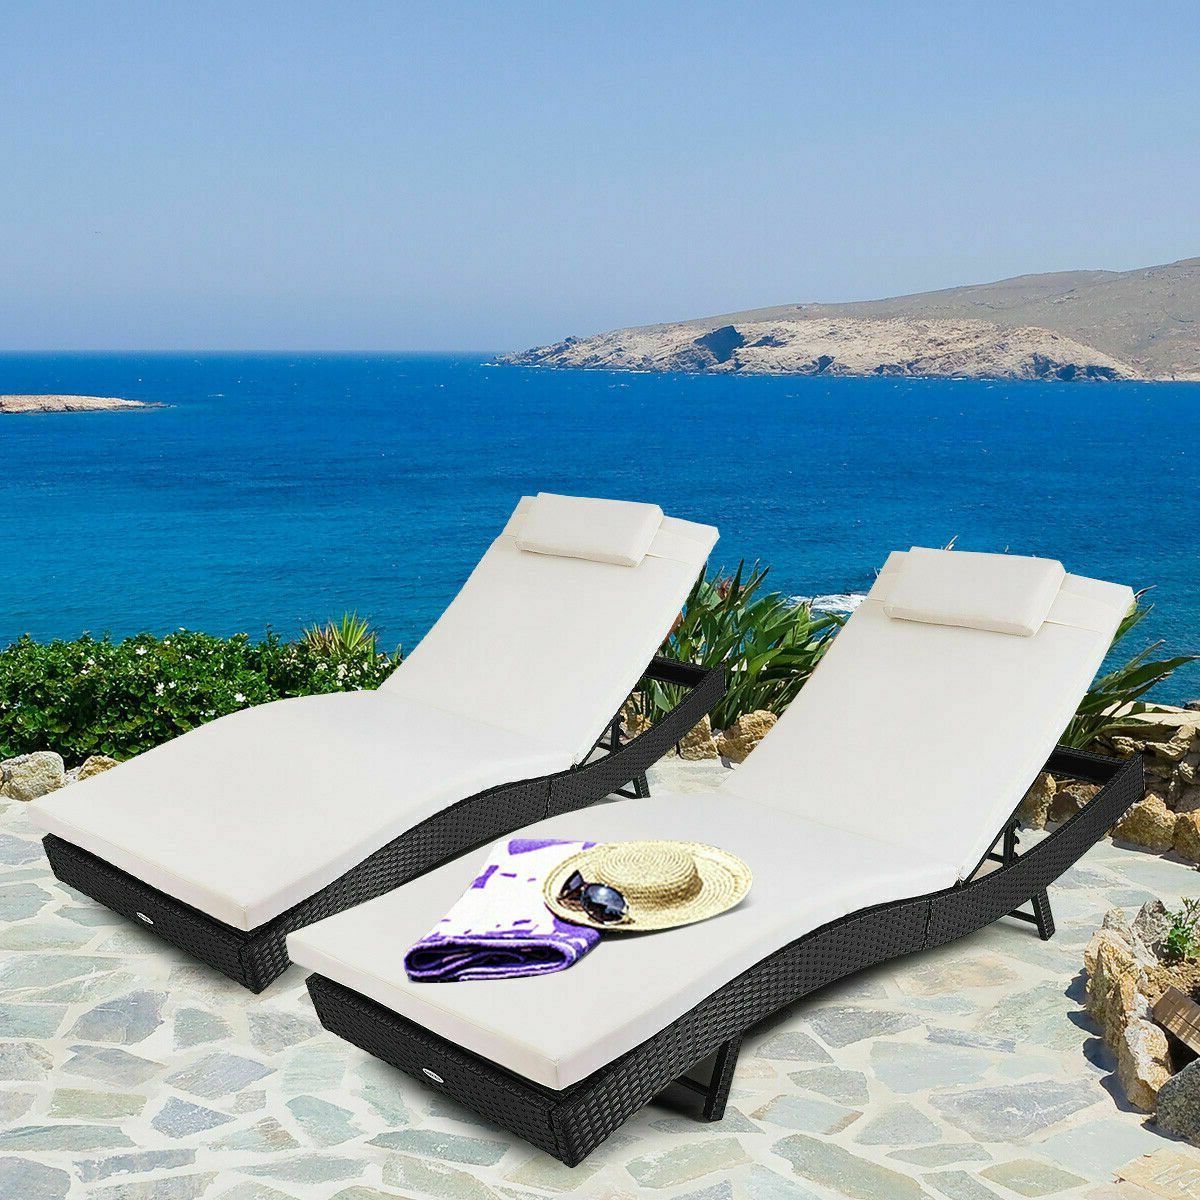 Widely Used Wood Blue And White Cushion Outdoor Chaise Lounge Chairs With Regard To Citycw Adjustable Pool Chaise Lounge Chair Outdoor Patio Furniture Pe  Wicker W/cushion (View 20 of 25)